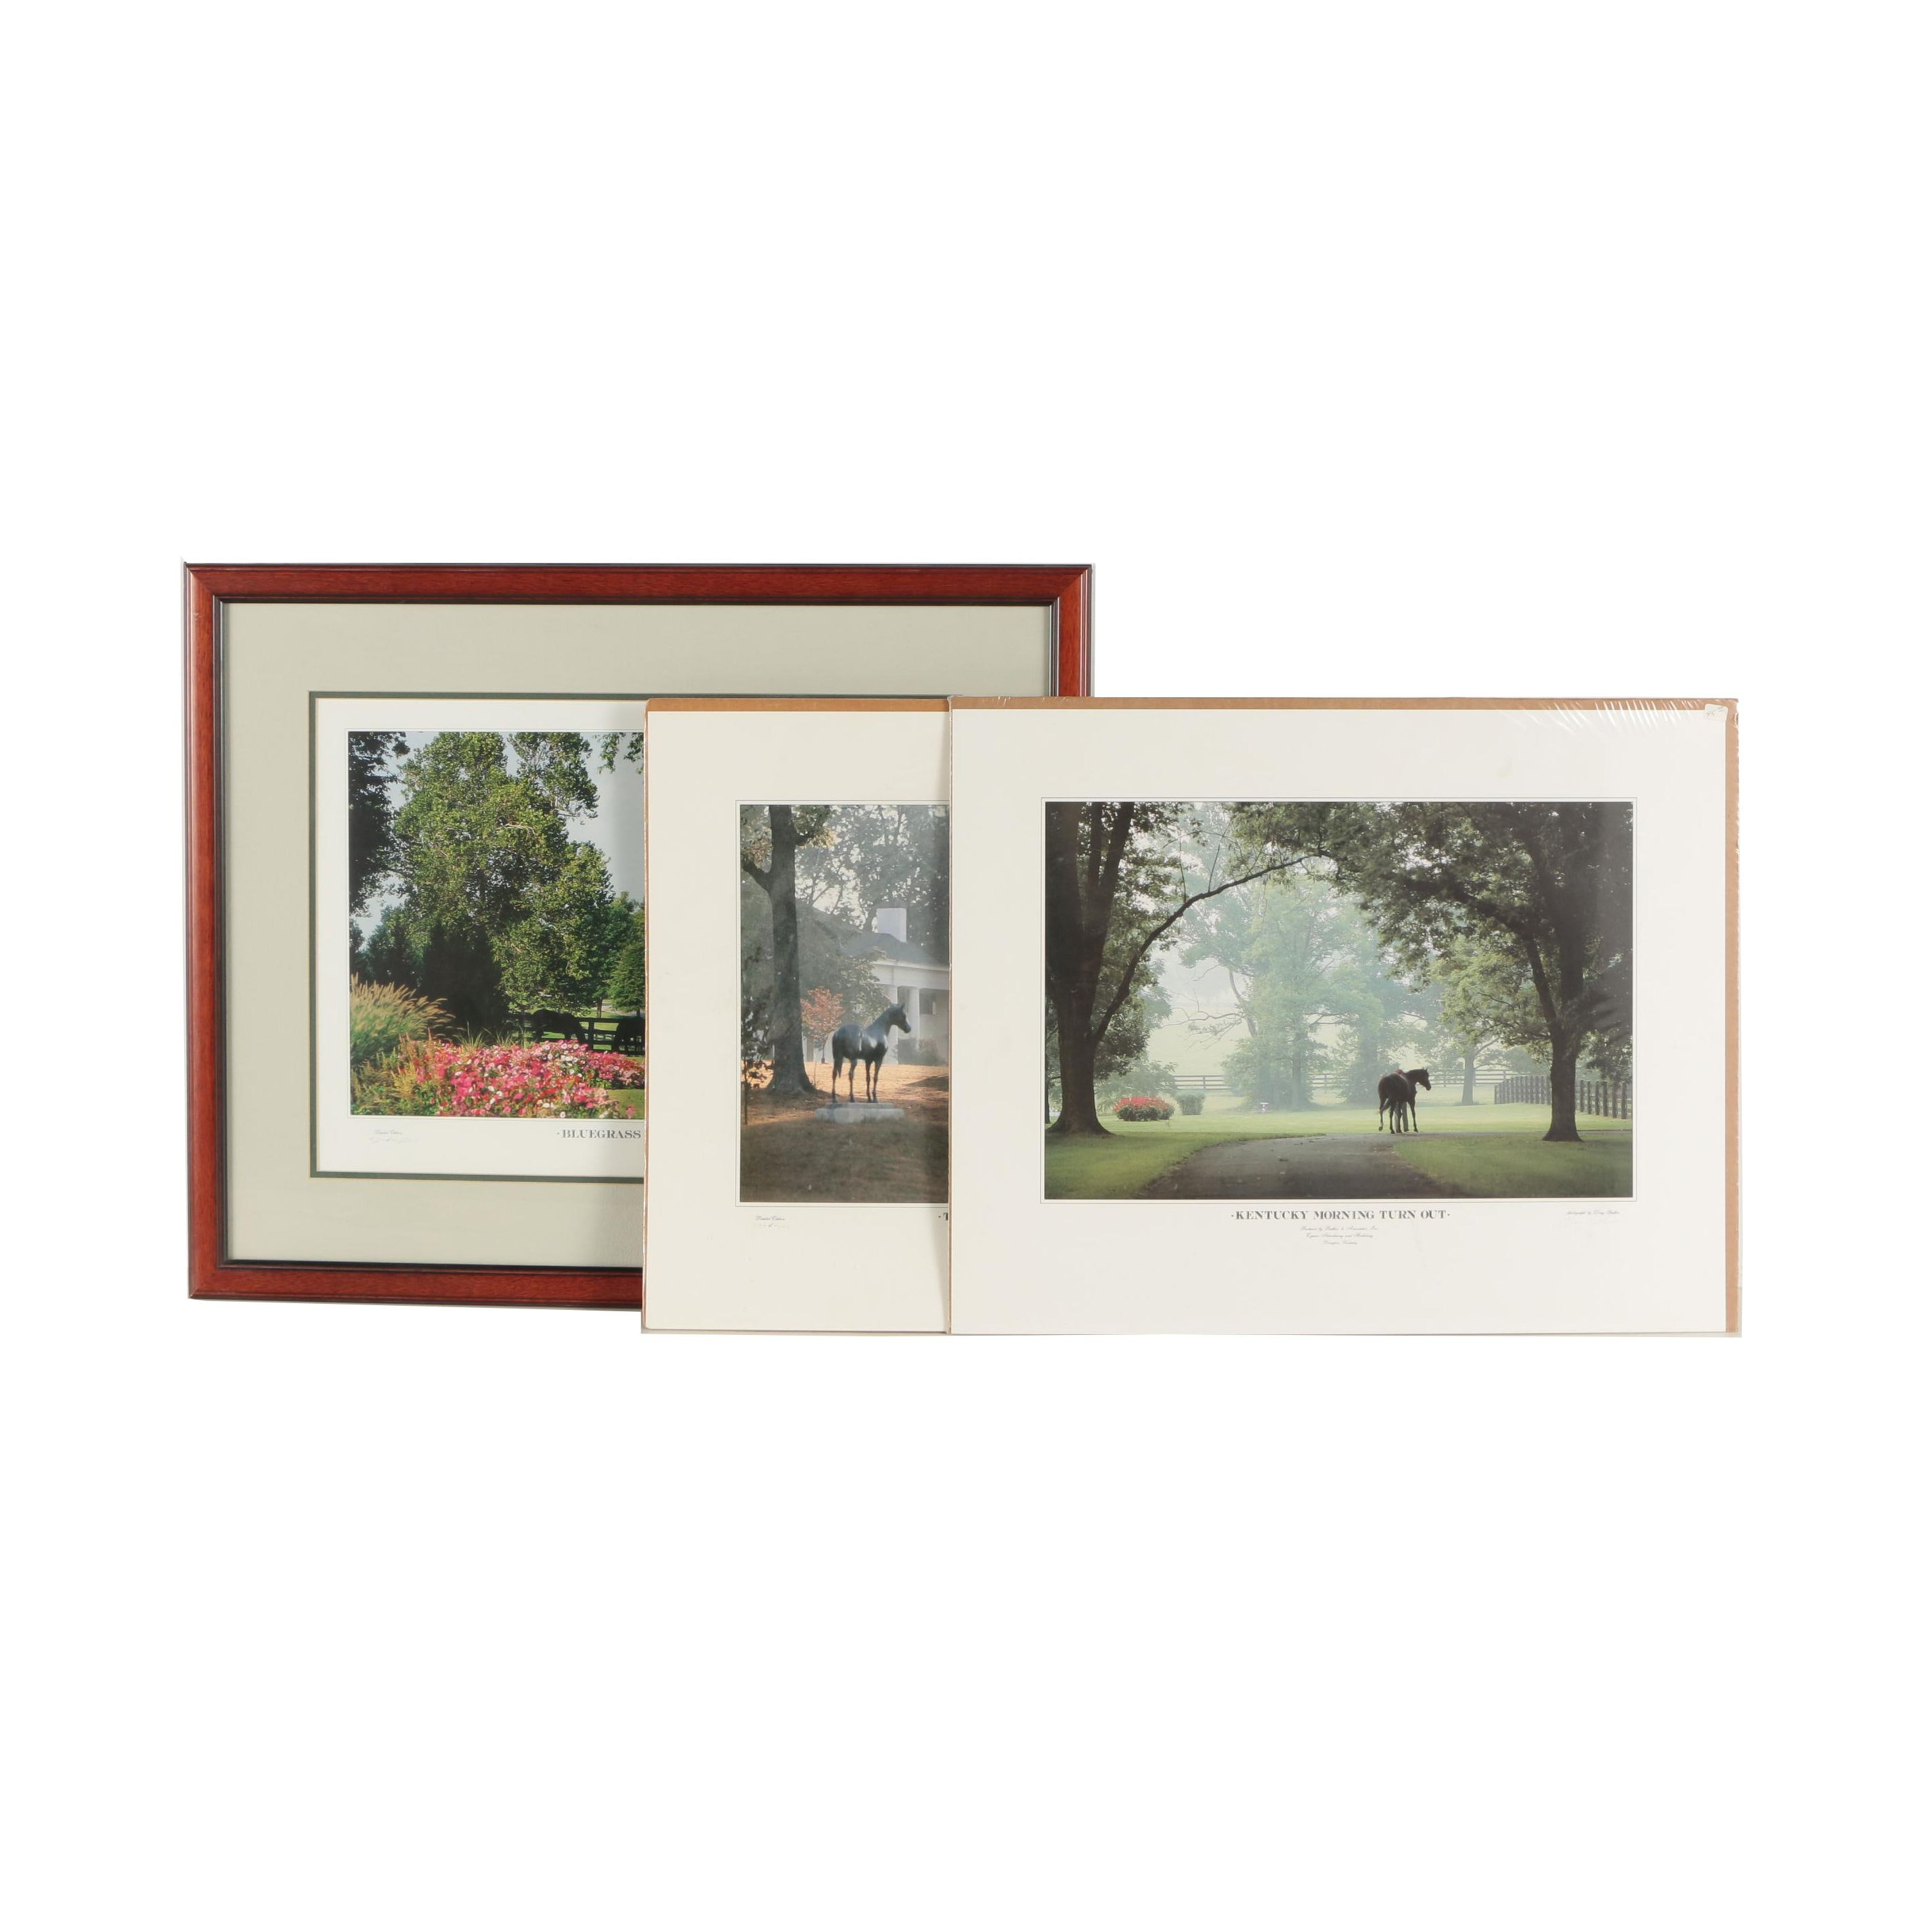 Doug Prather Limited Edition Offset Lithographs of Kentucky and Horses